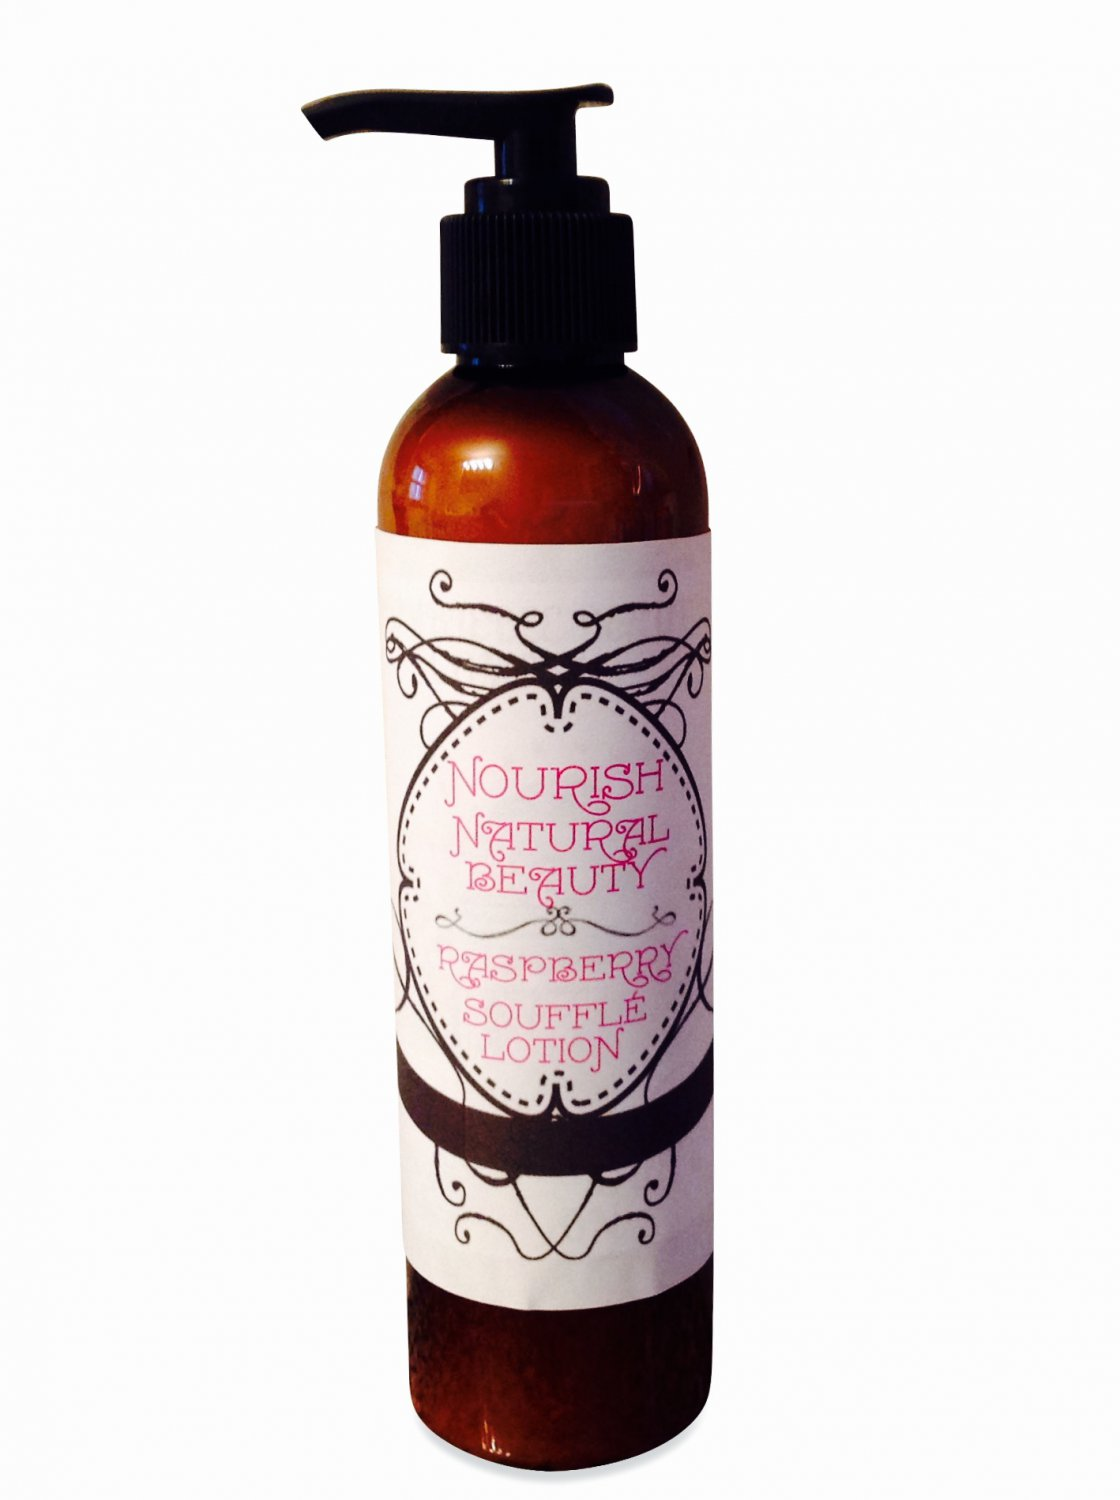 Raspberry Souffl'e lotion